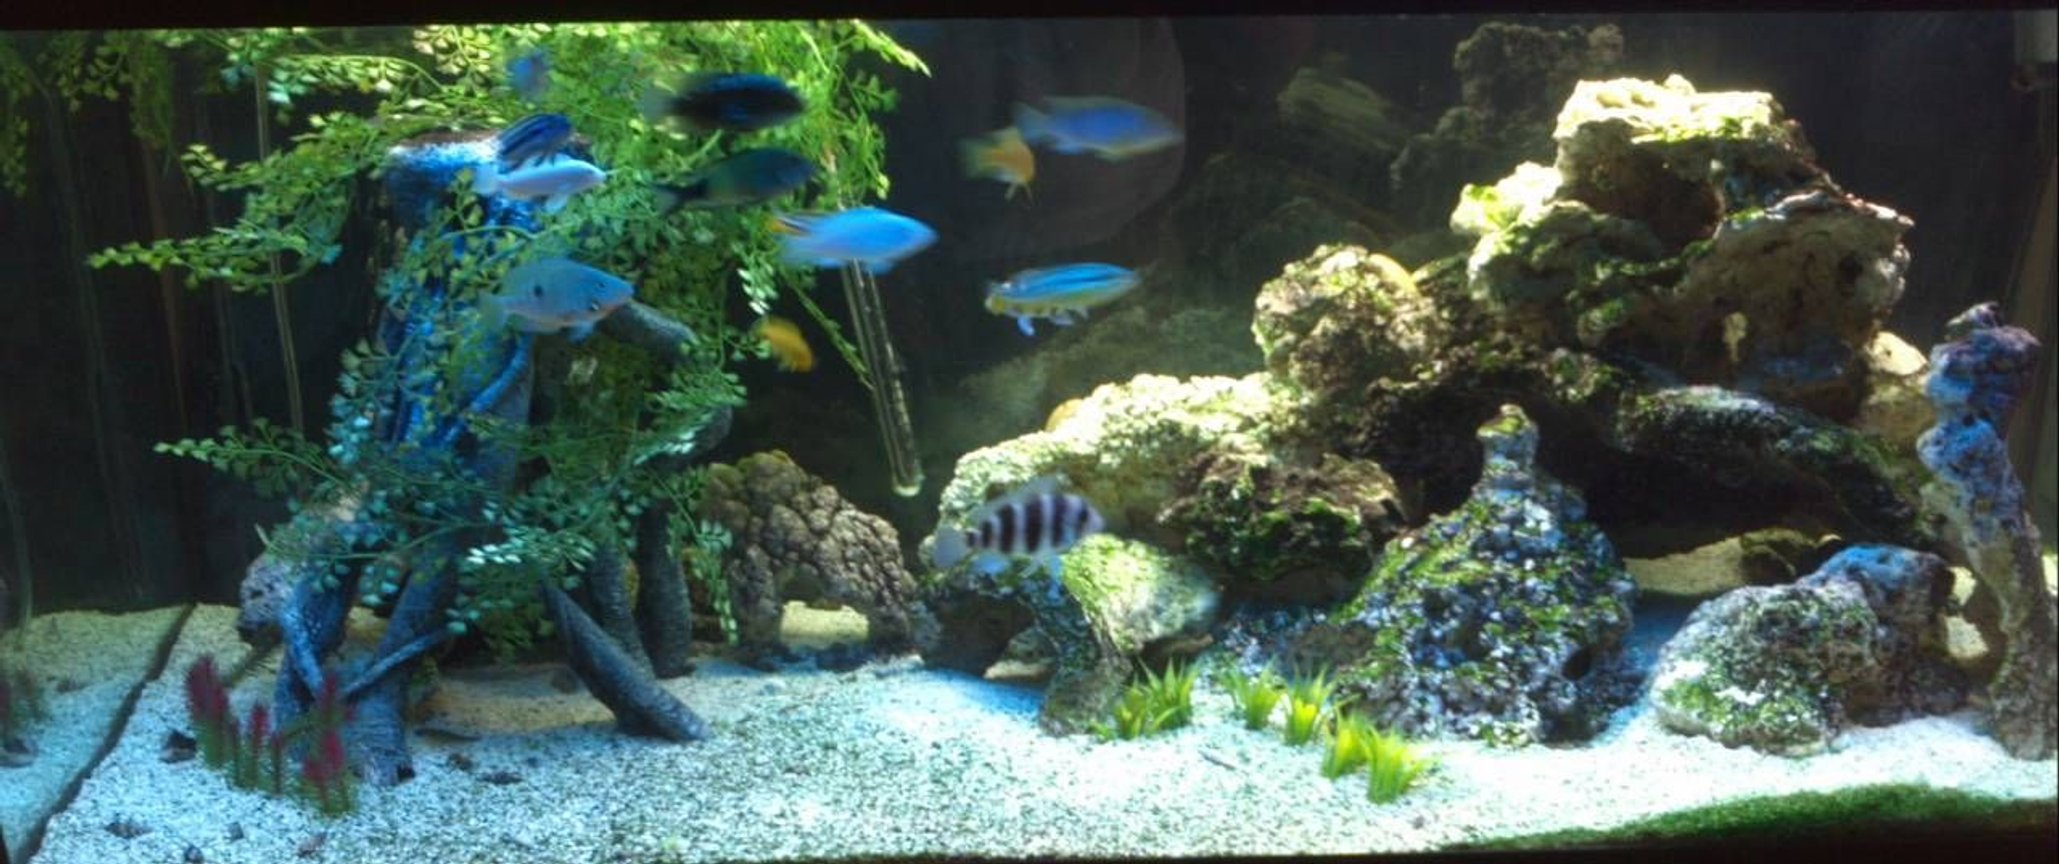 75 gallons freshwater fish tank (mostly fish and non-living decorations) - Mixed